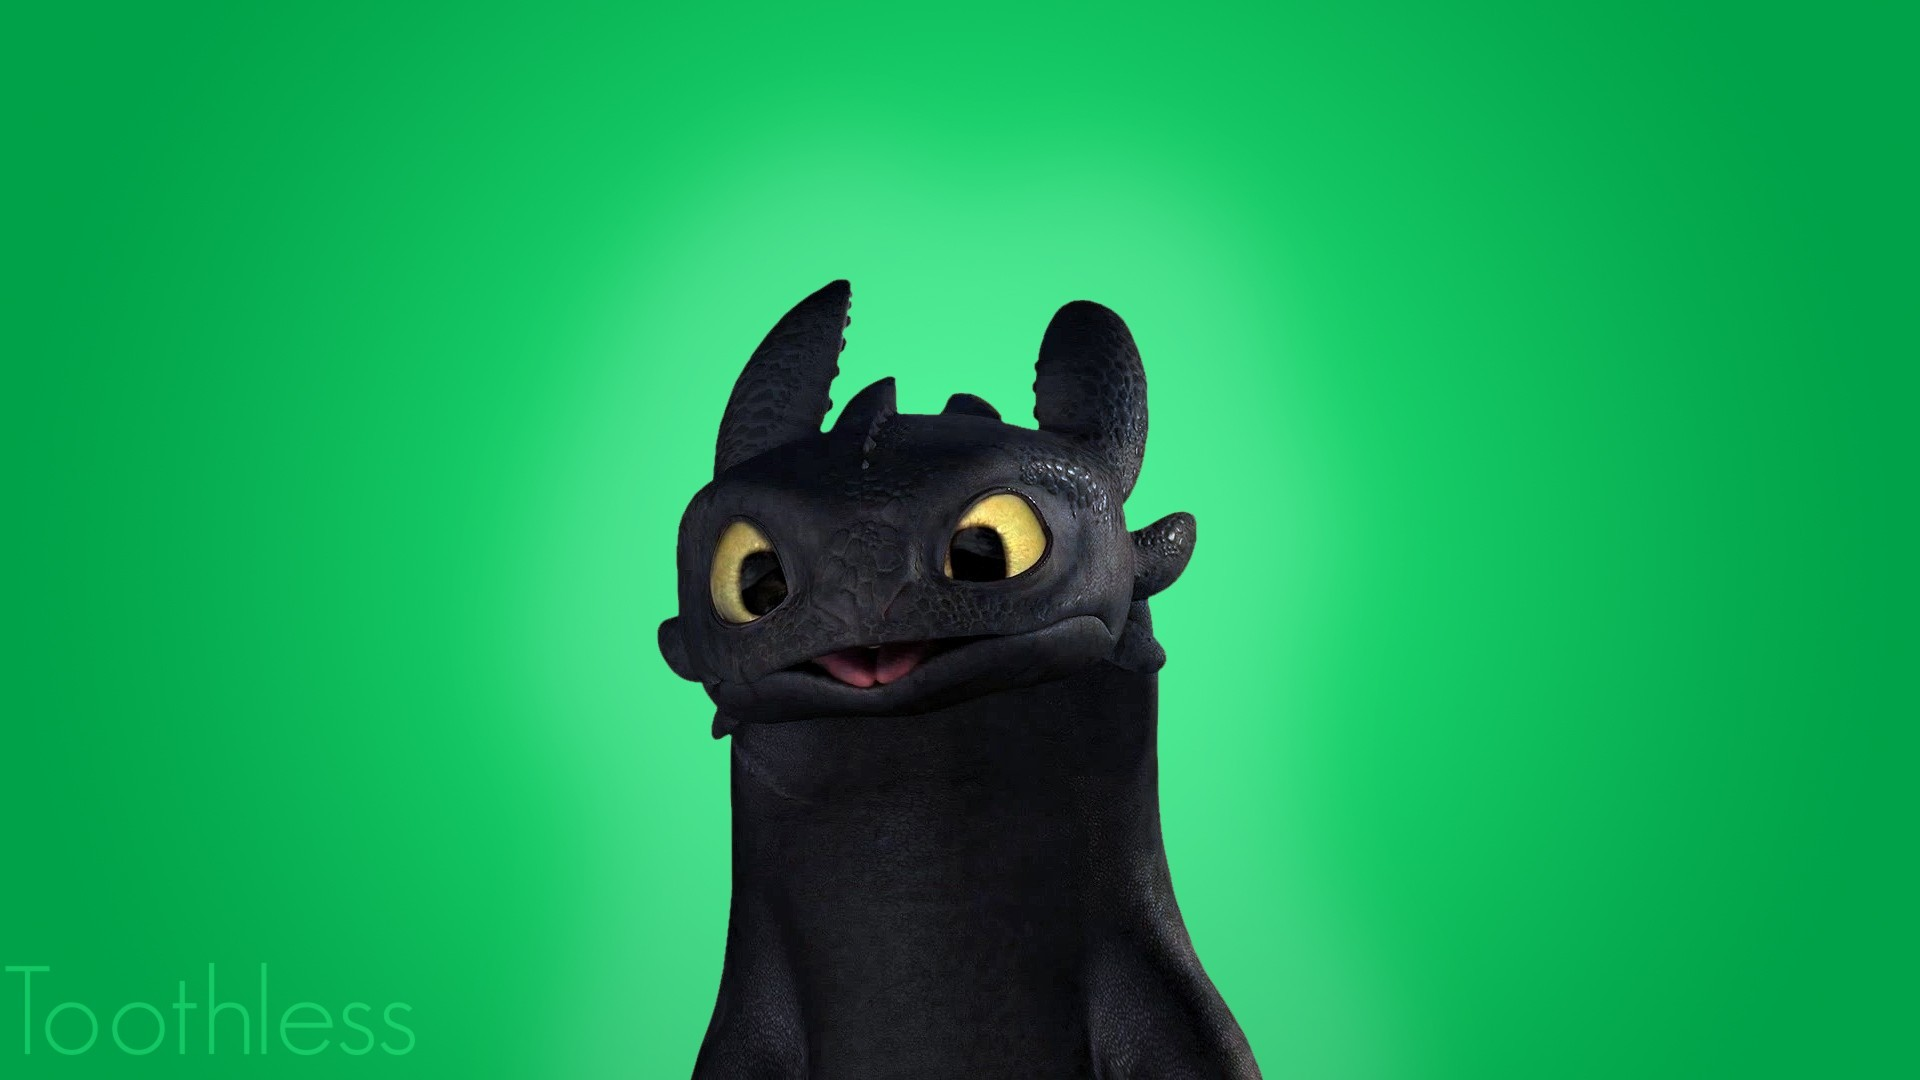 Toothless Wallpaper 75 Pictures